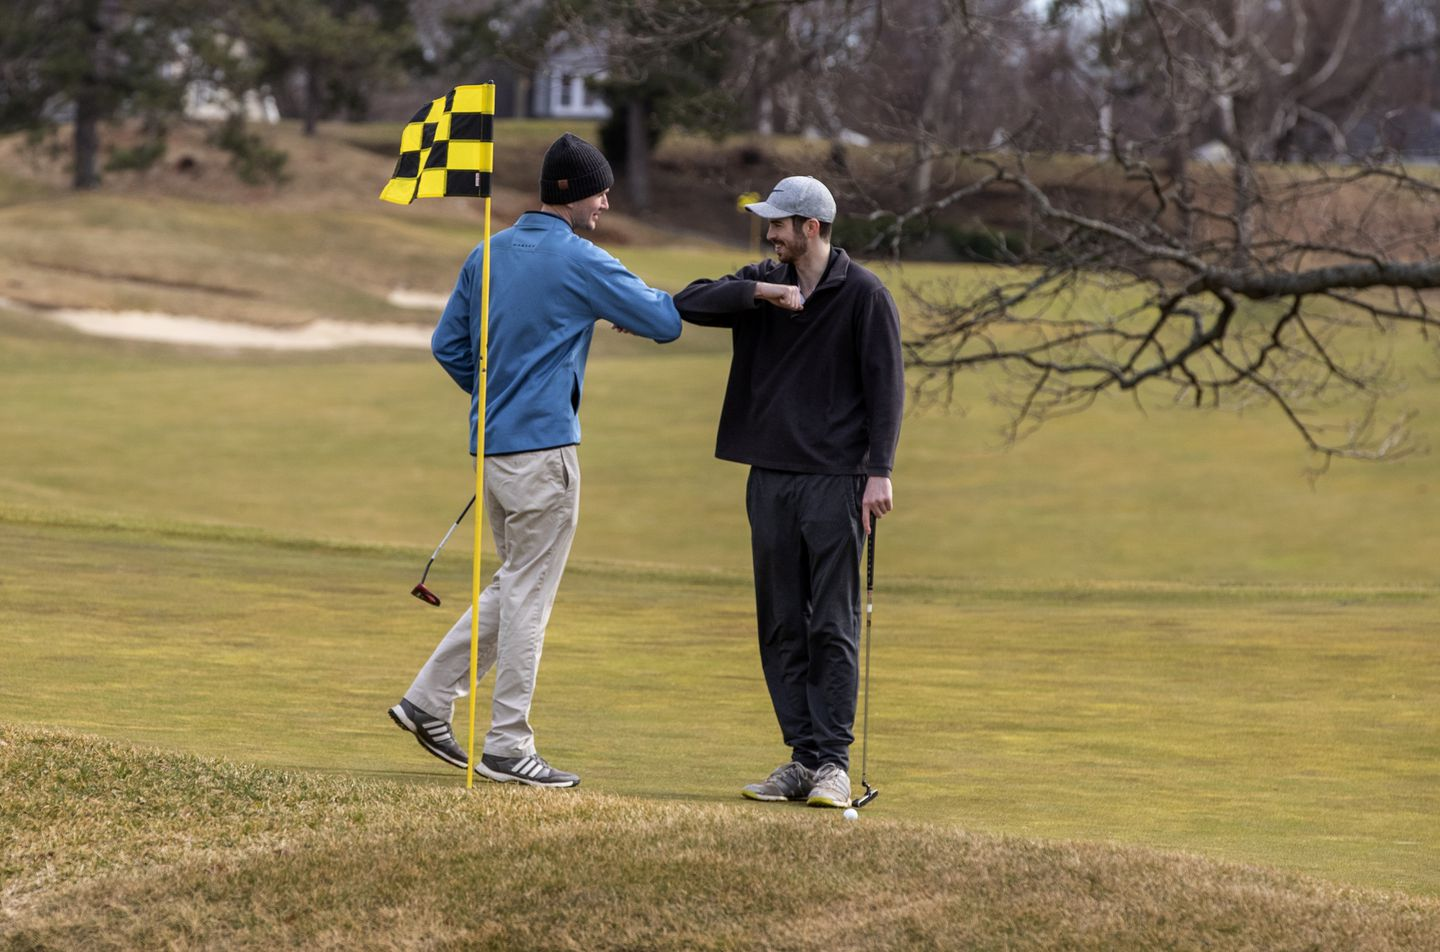 Tee times sold out at Presidents Golf Course on Saturday, where two golfers avoided more traditional high-fives in favor of elbow knocks.